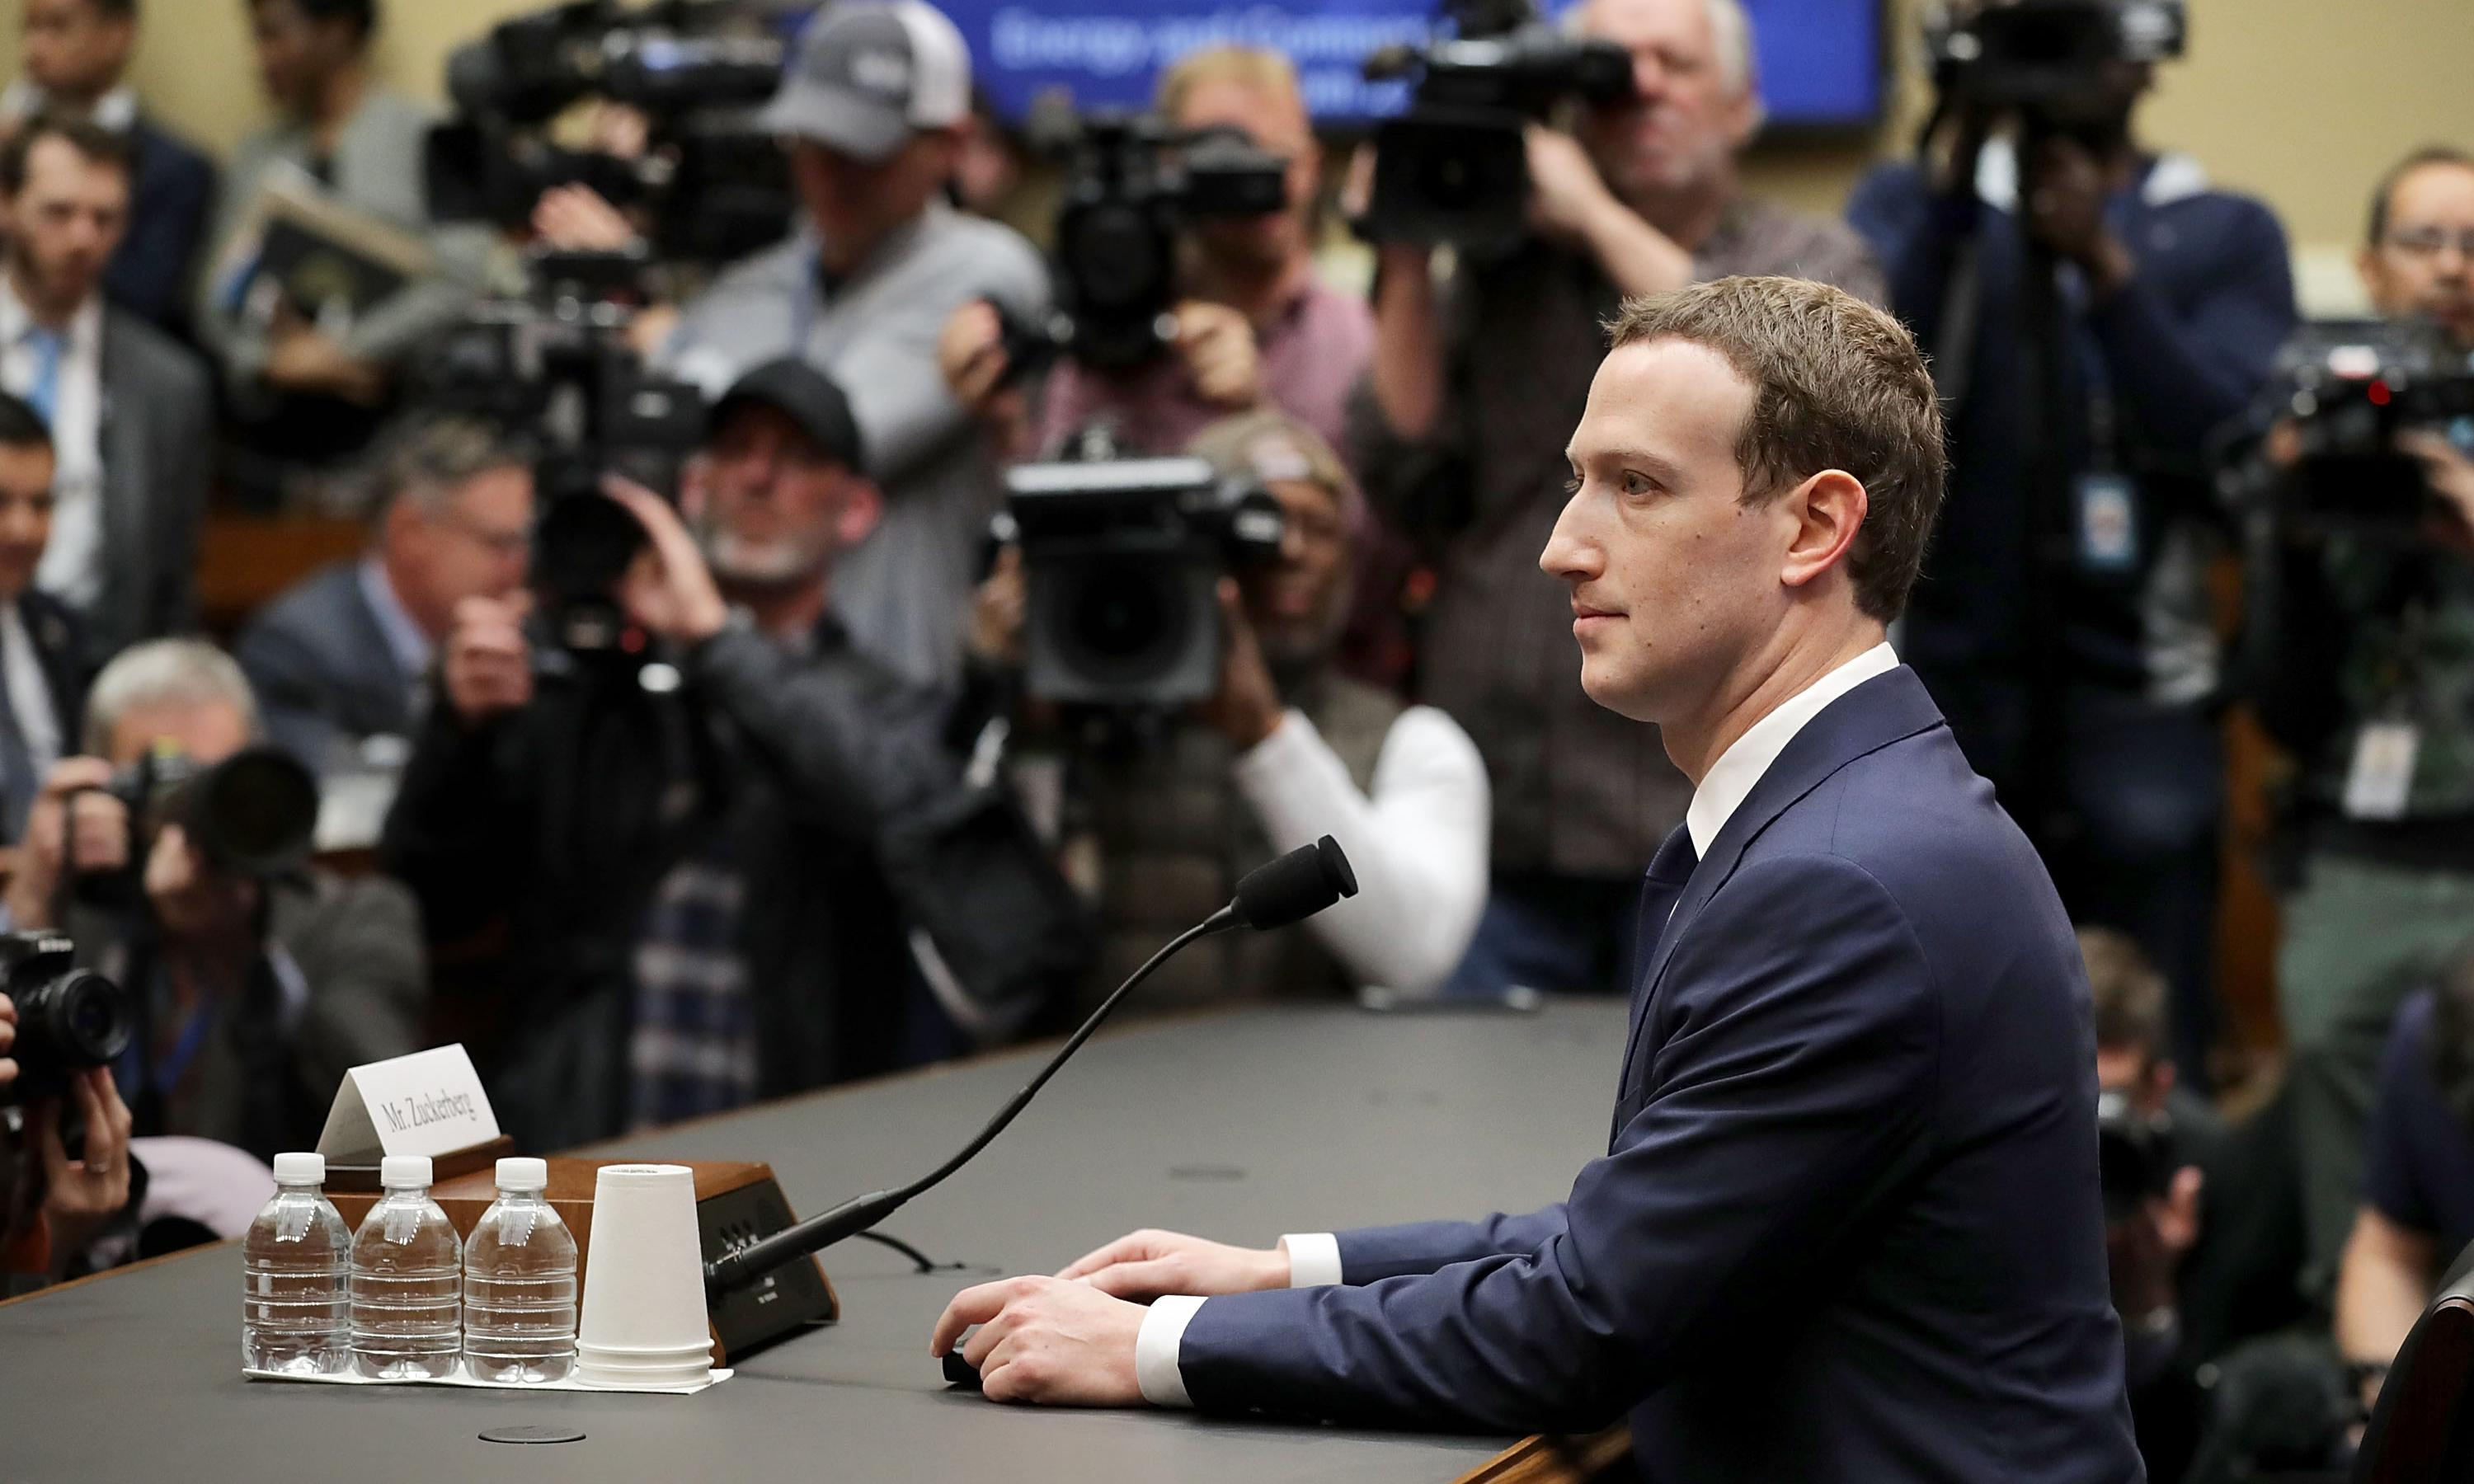 Document reveals how Facebook downplayed early Cambridge Analytica concerns